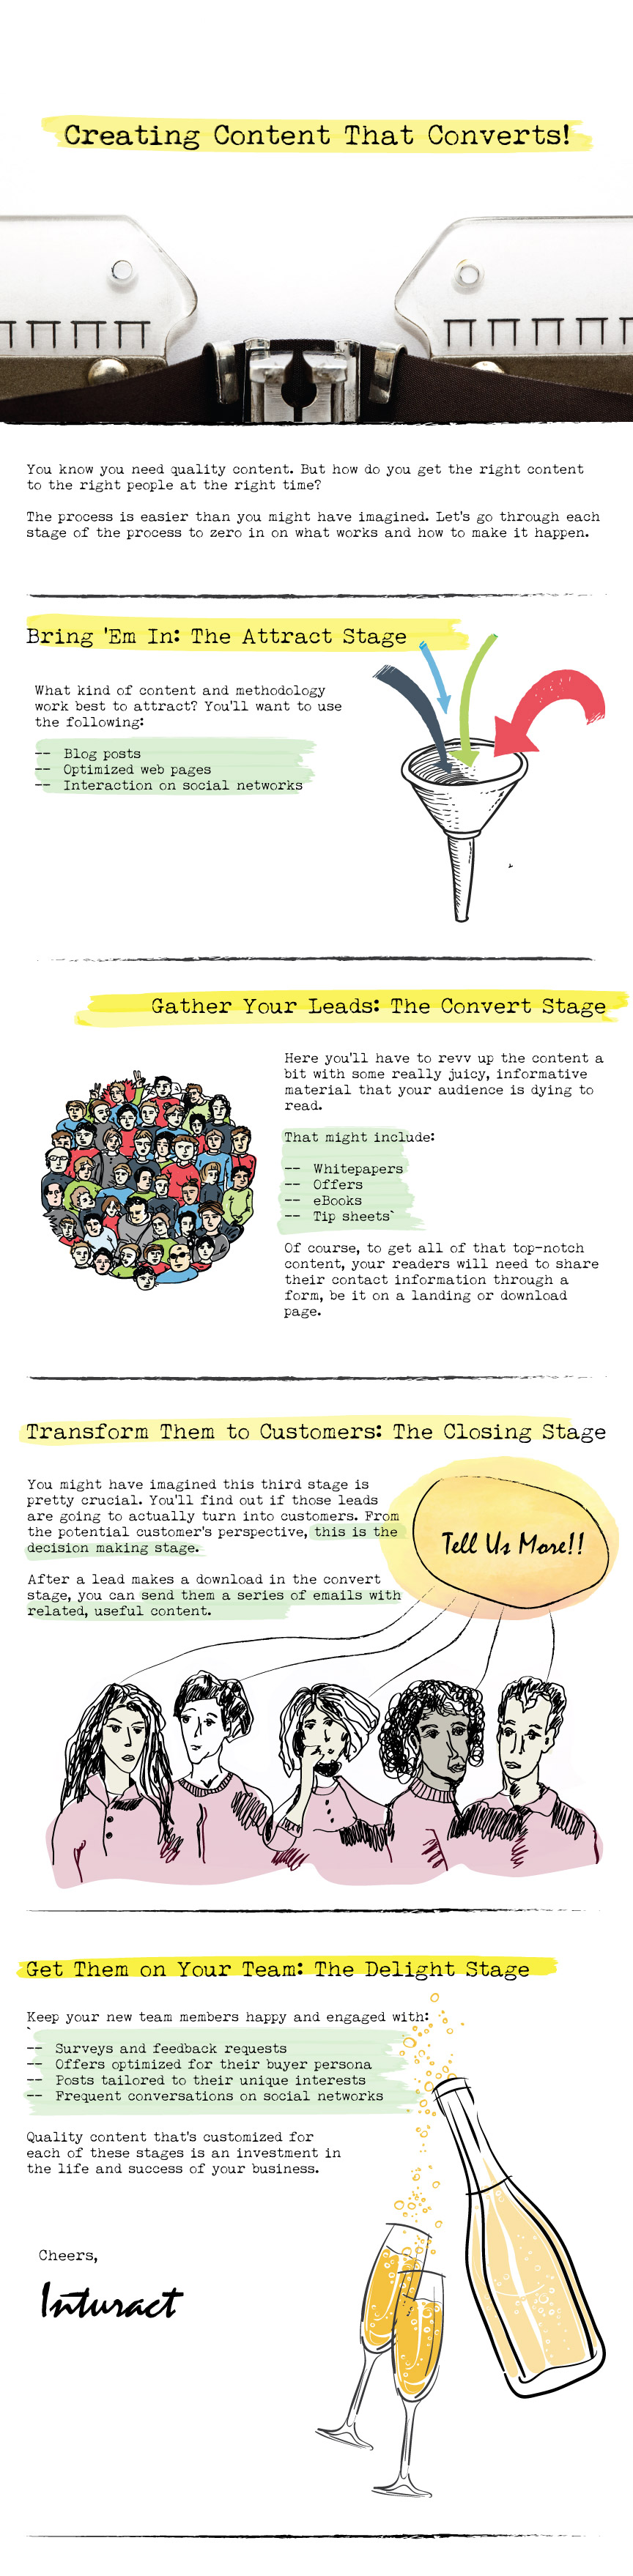 contentthatconverts_infographic